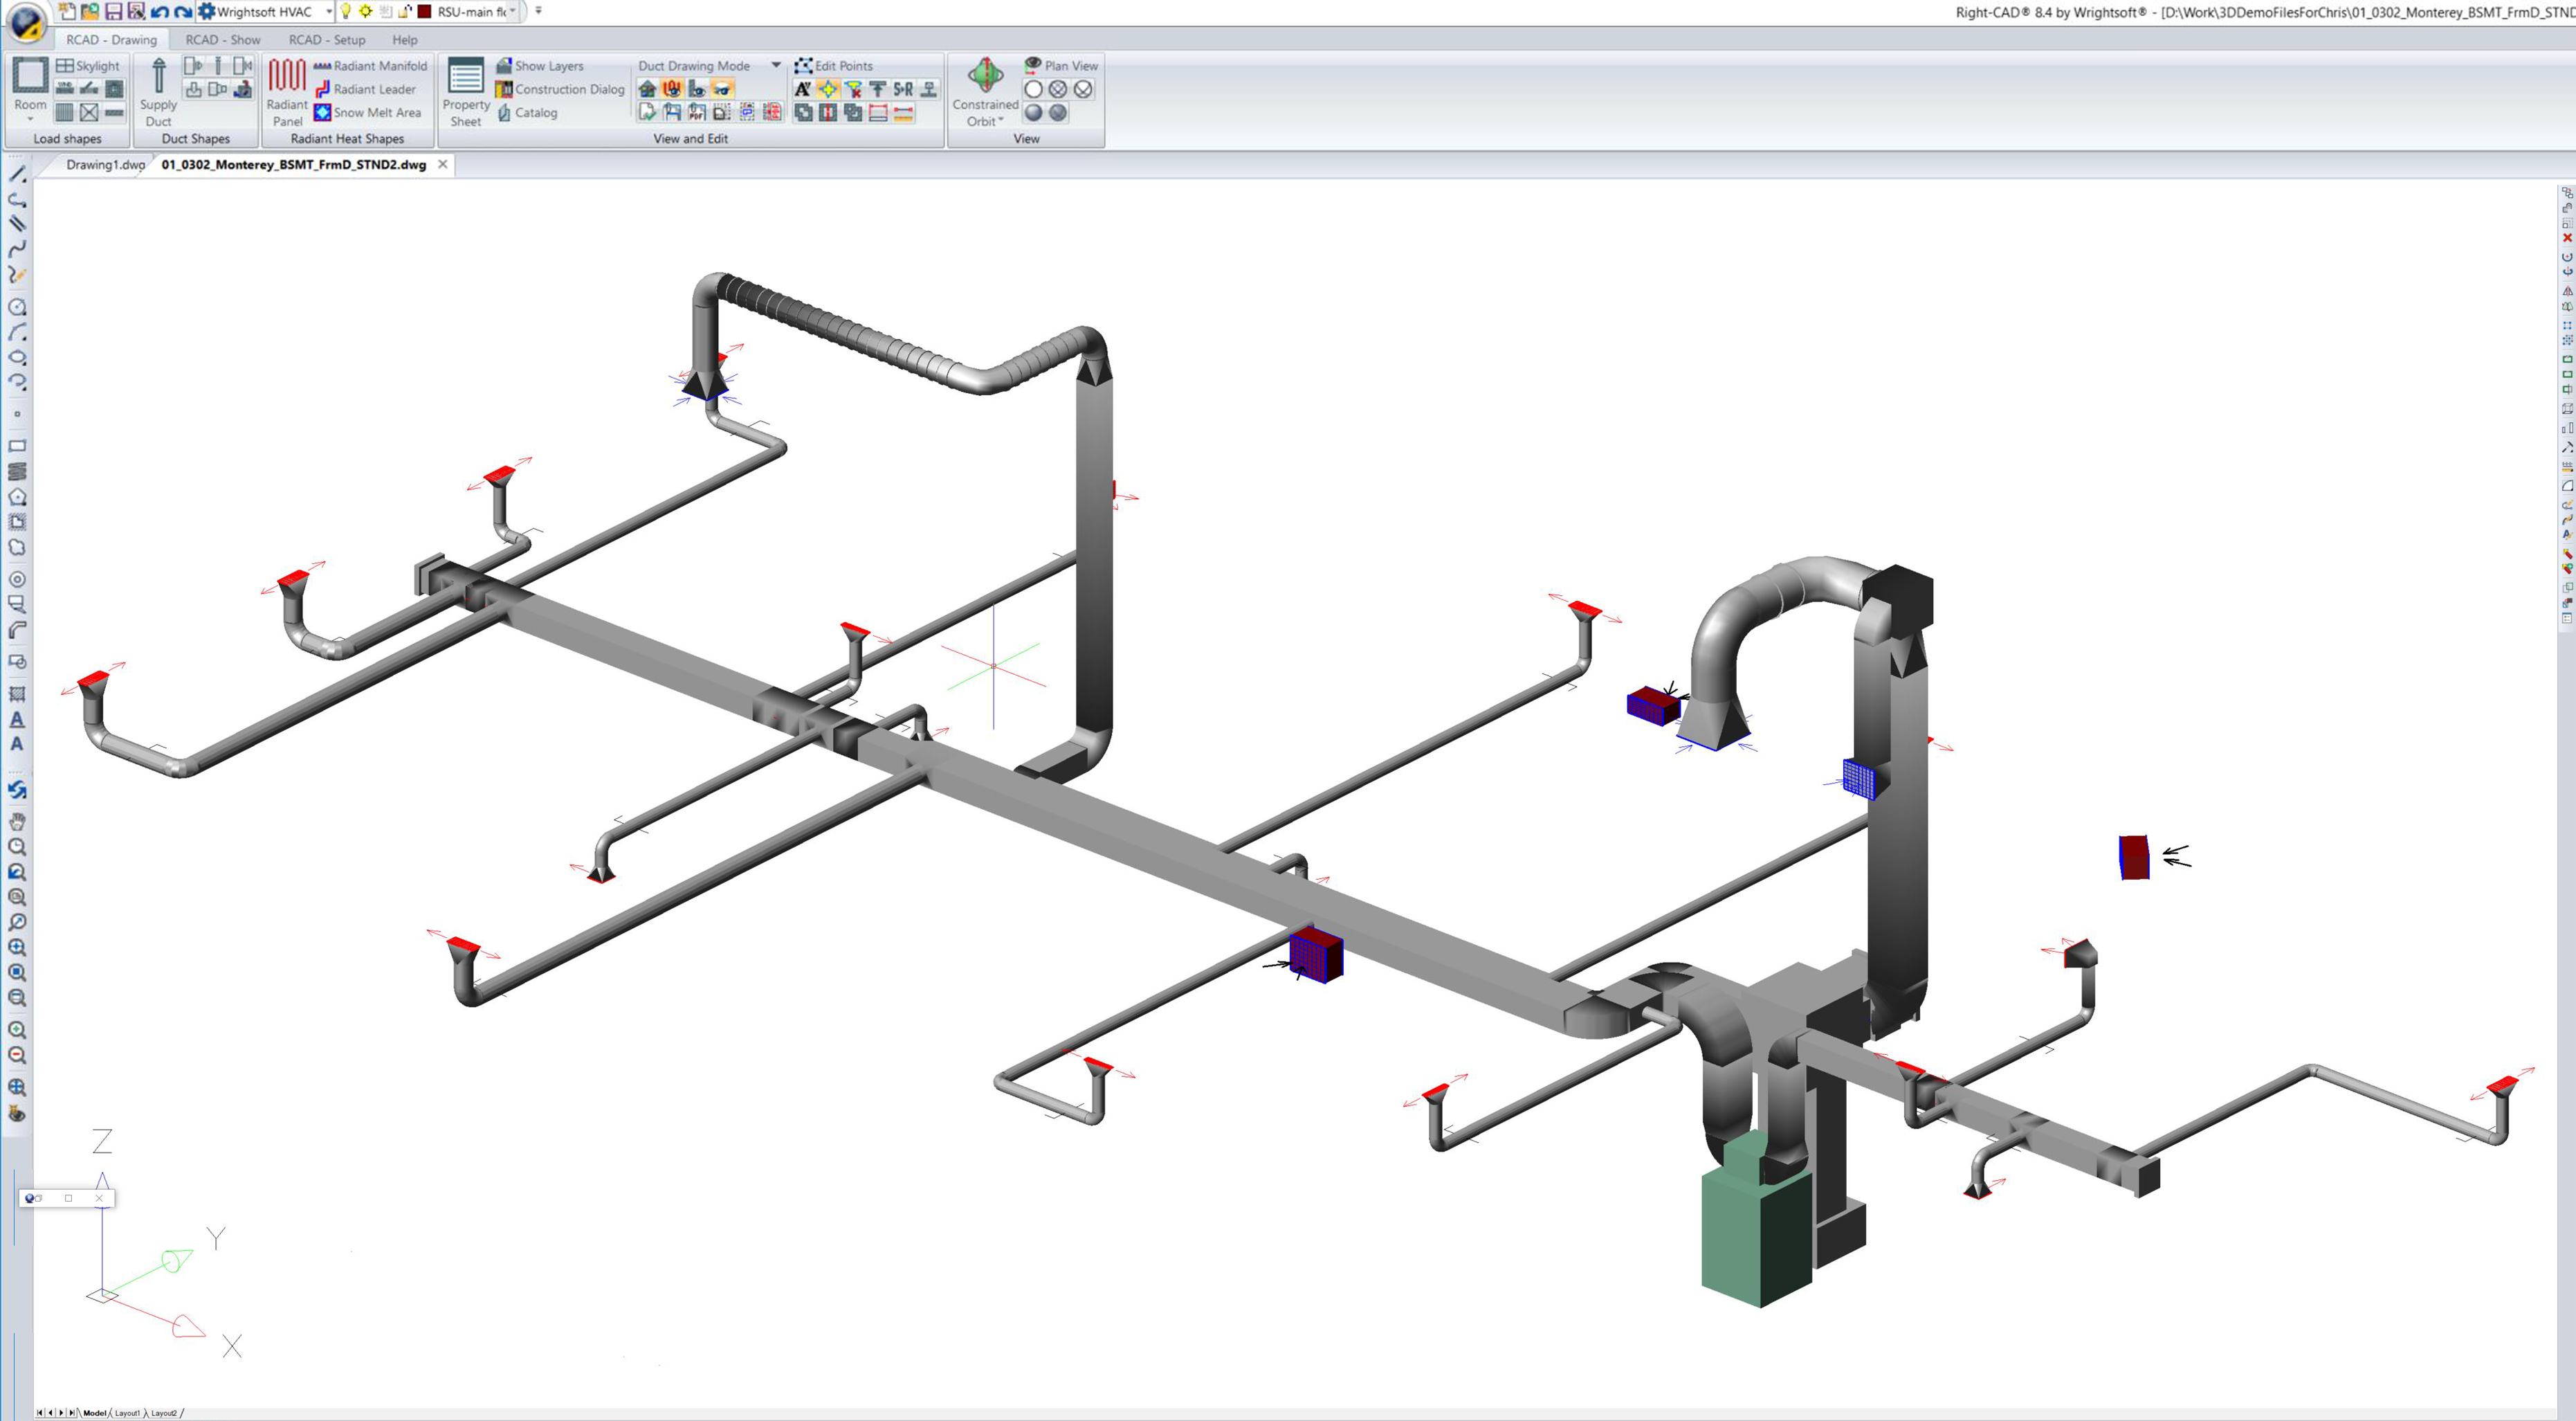 Wrightsoft > Products > Desktop Solutions > Right-CAD | Hvac Drawing Program |  | Wrightsoft